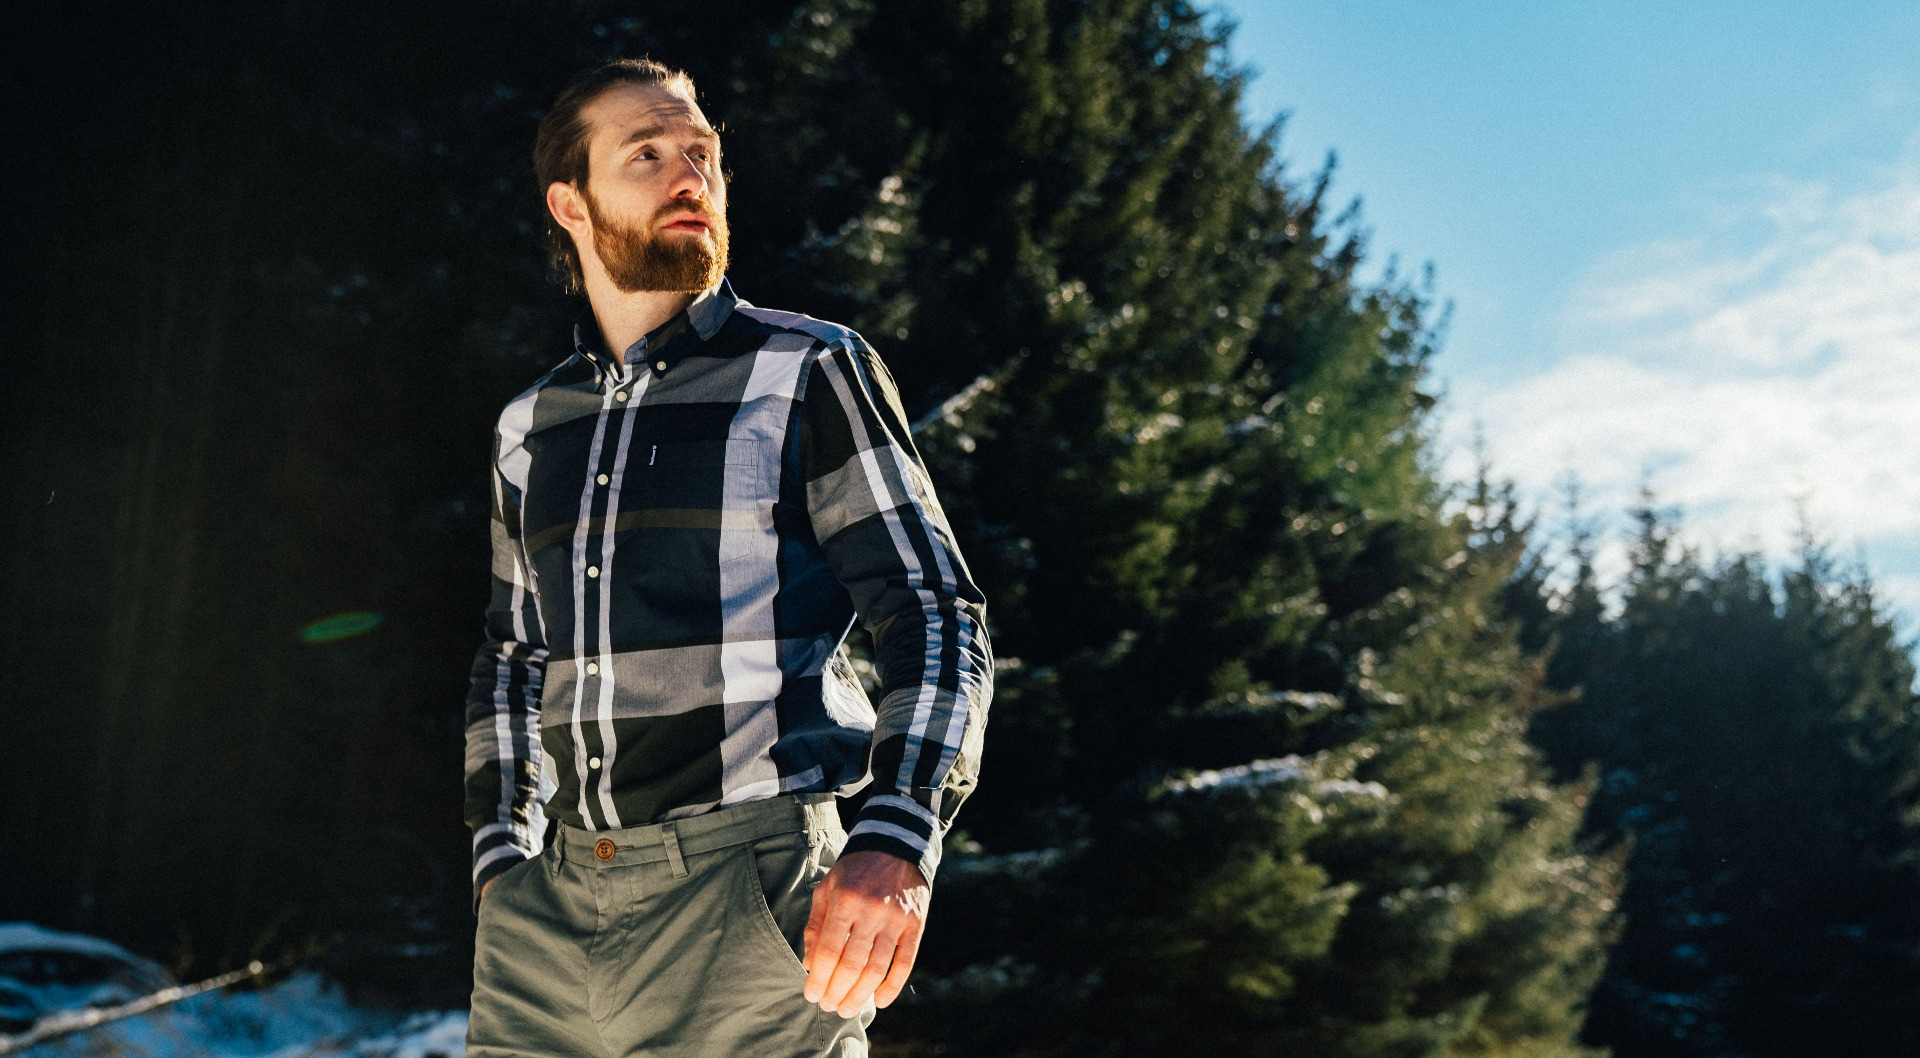 Tristan styles the Men's Tartan SS21 Collection